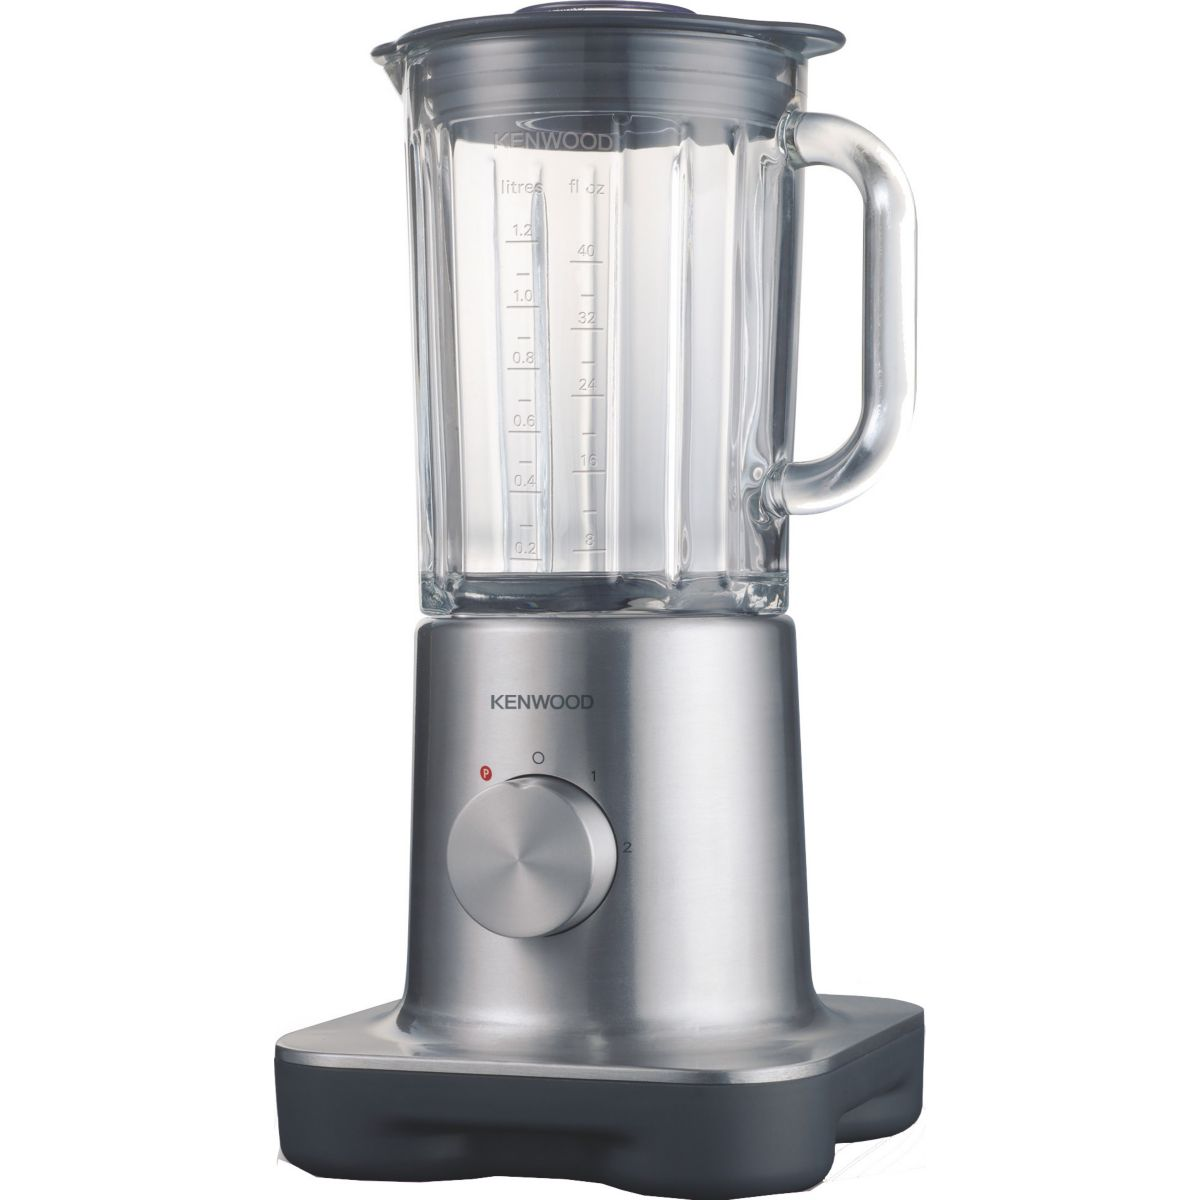 kenwood bl680 blender 1 6 l bol verre comparer avec. Black Bedroom Furniture Sets. Home Design Ideas